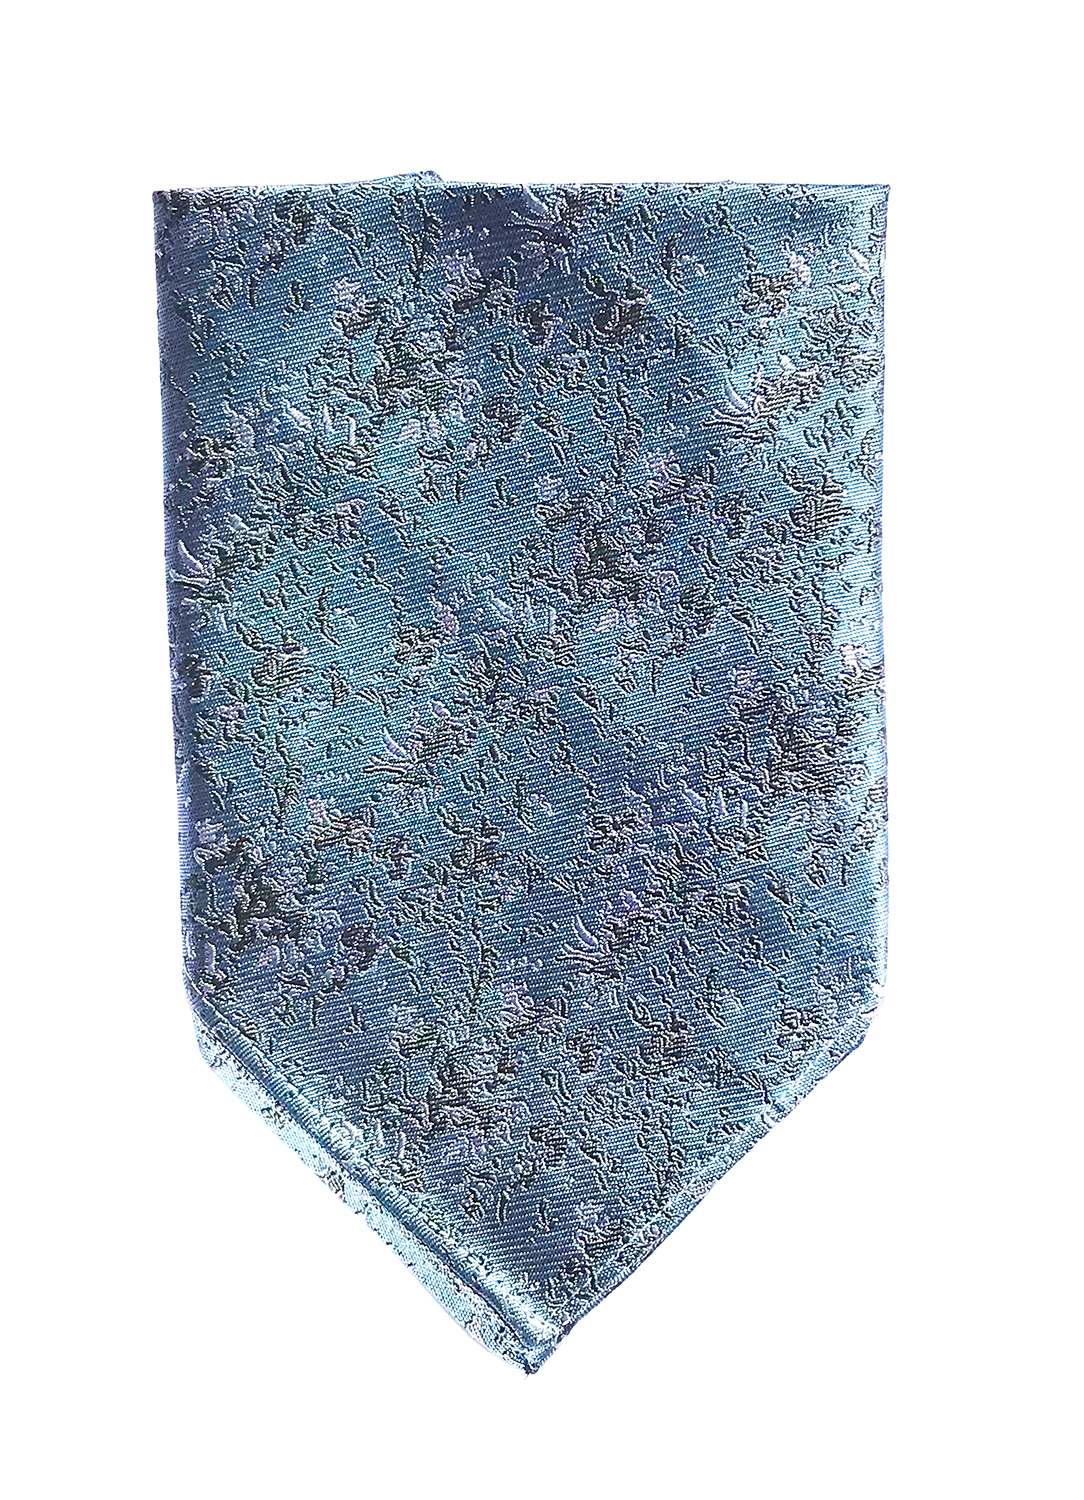 Arctic Drift pocket square in arctic blue